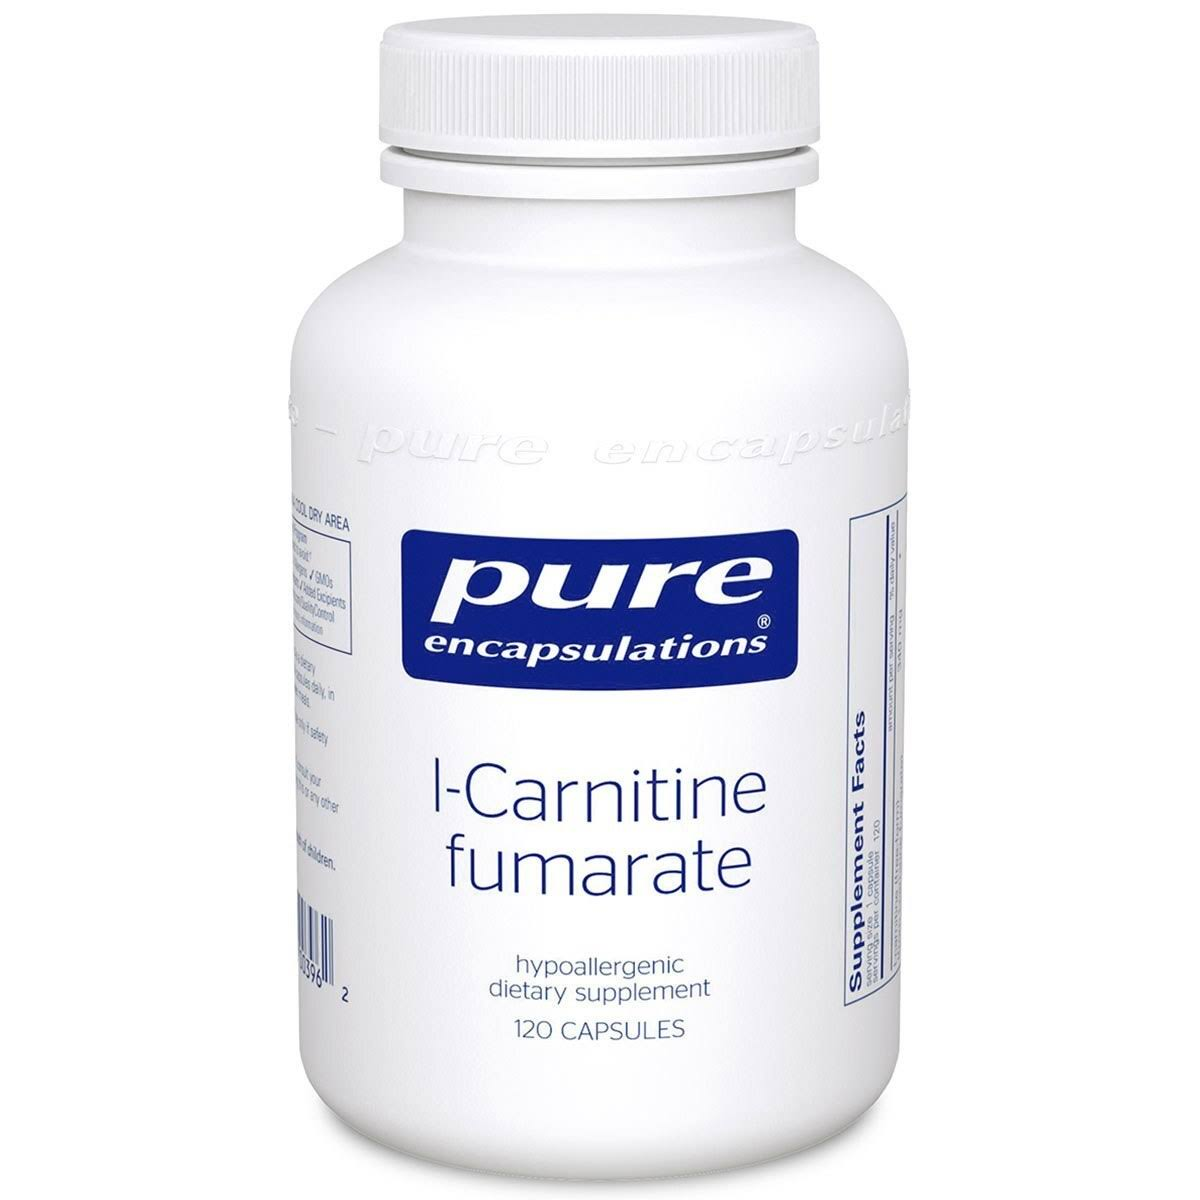 Pure Encapsulations L-Carnitine Fumarate Supplement - 340mg 120ct